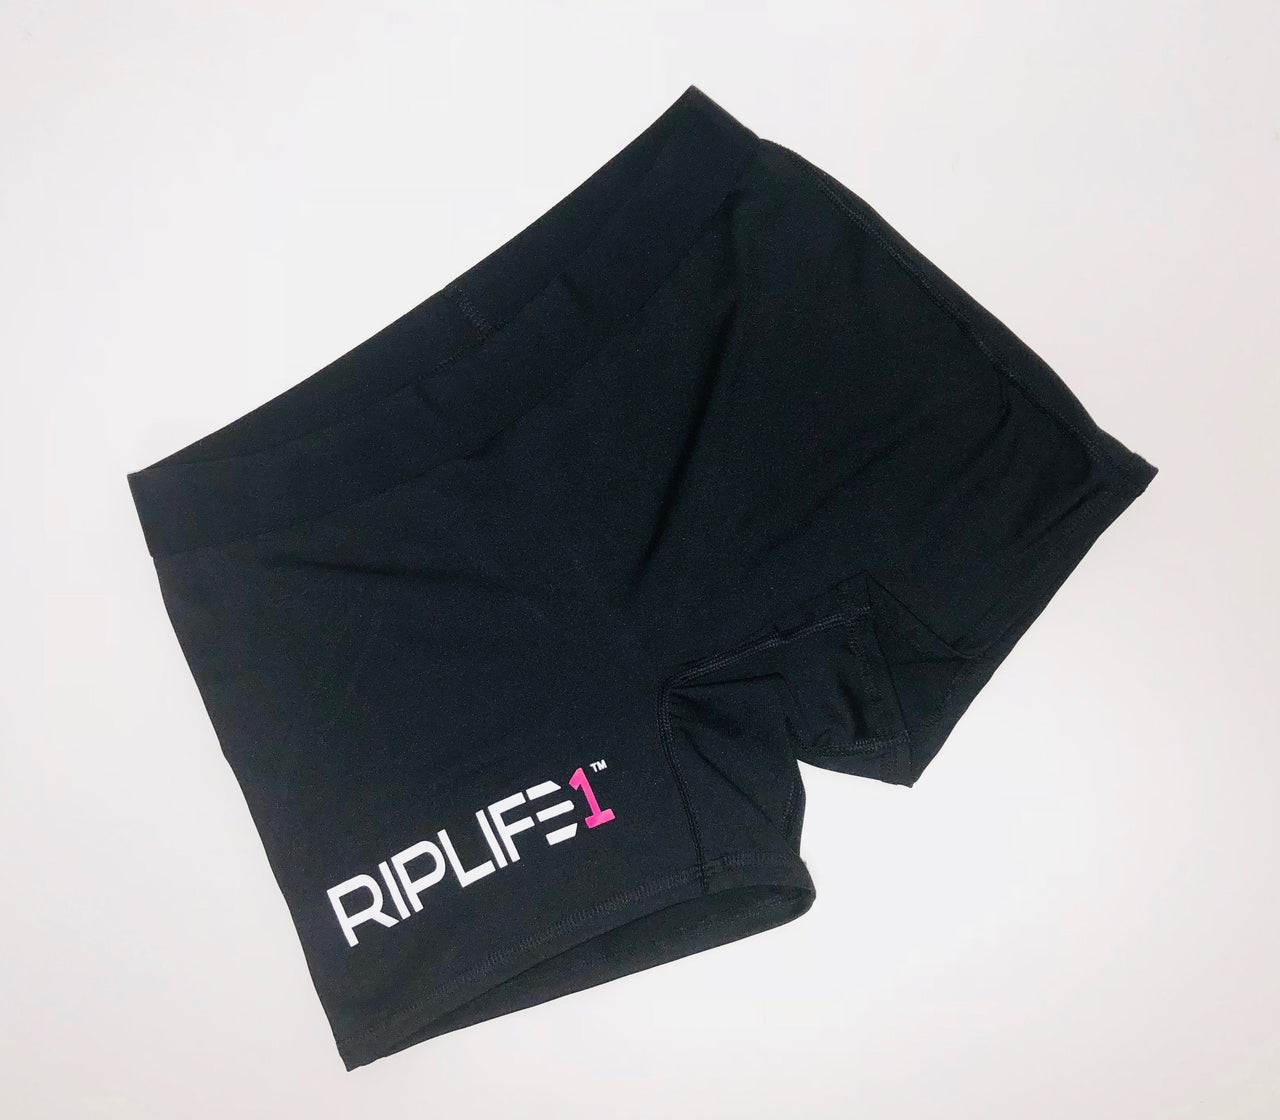 Women's Workout Shorts - Black - RIPLIFE1